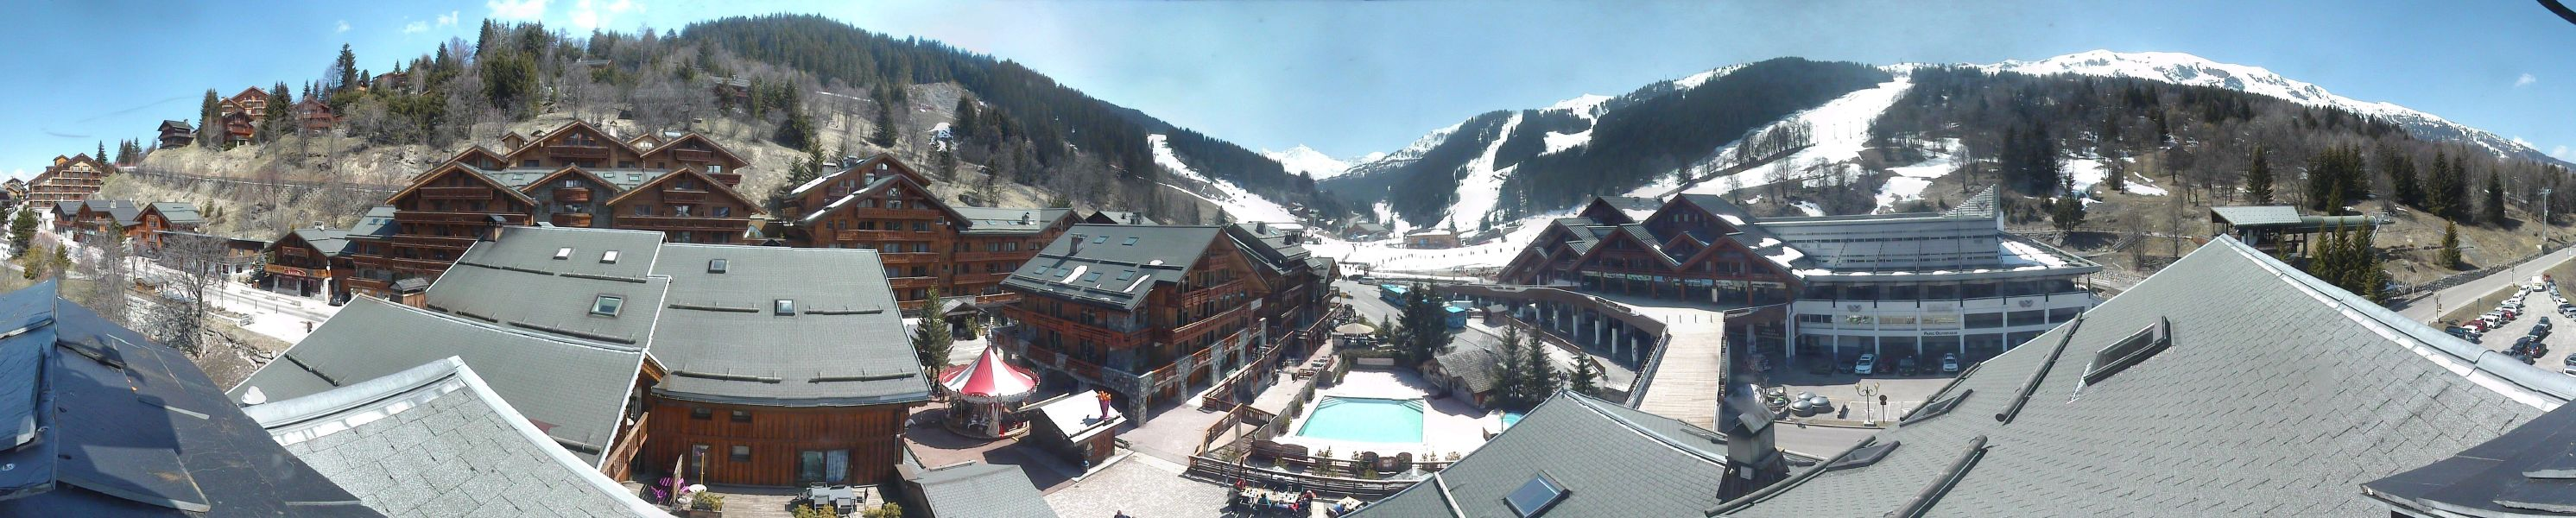 This Webcam overlooks the Village Centre towards the Chaudanne, the main lift station in Meribel